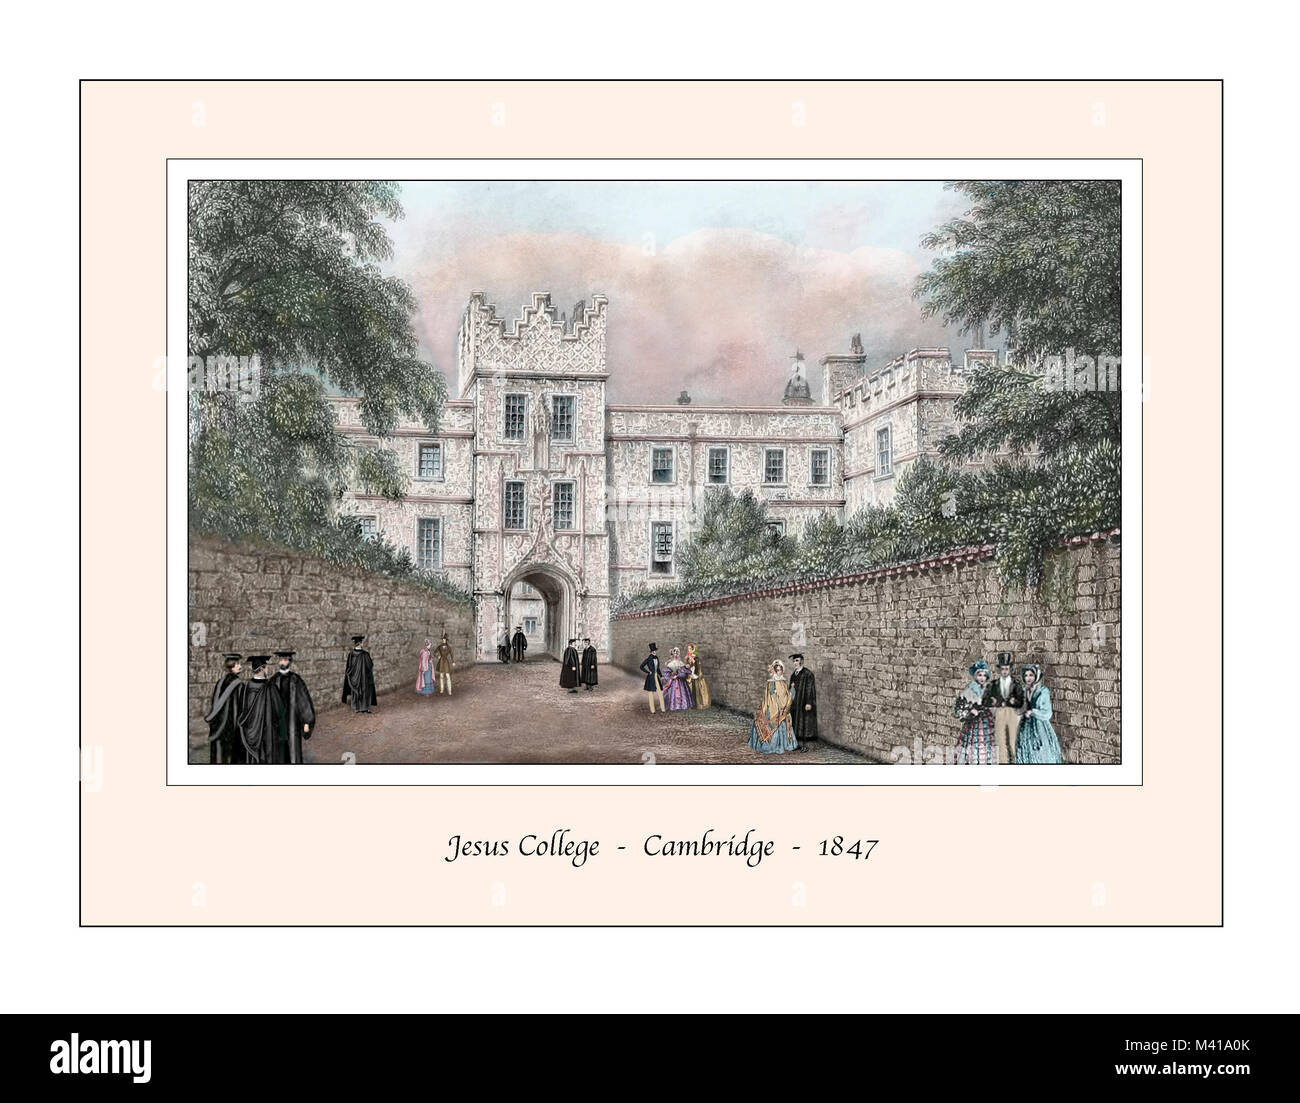 Jesus College Cambridge Original Design based on a 19th century Engraving - Stock Image